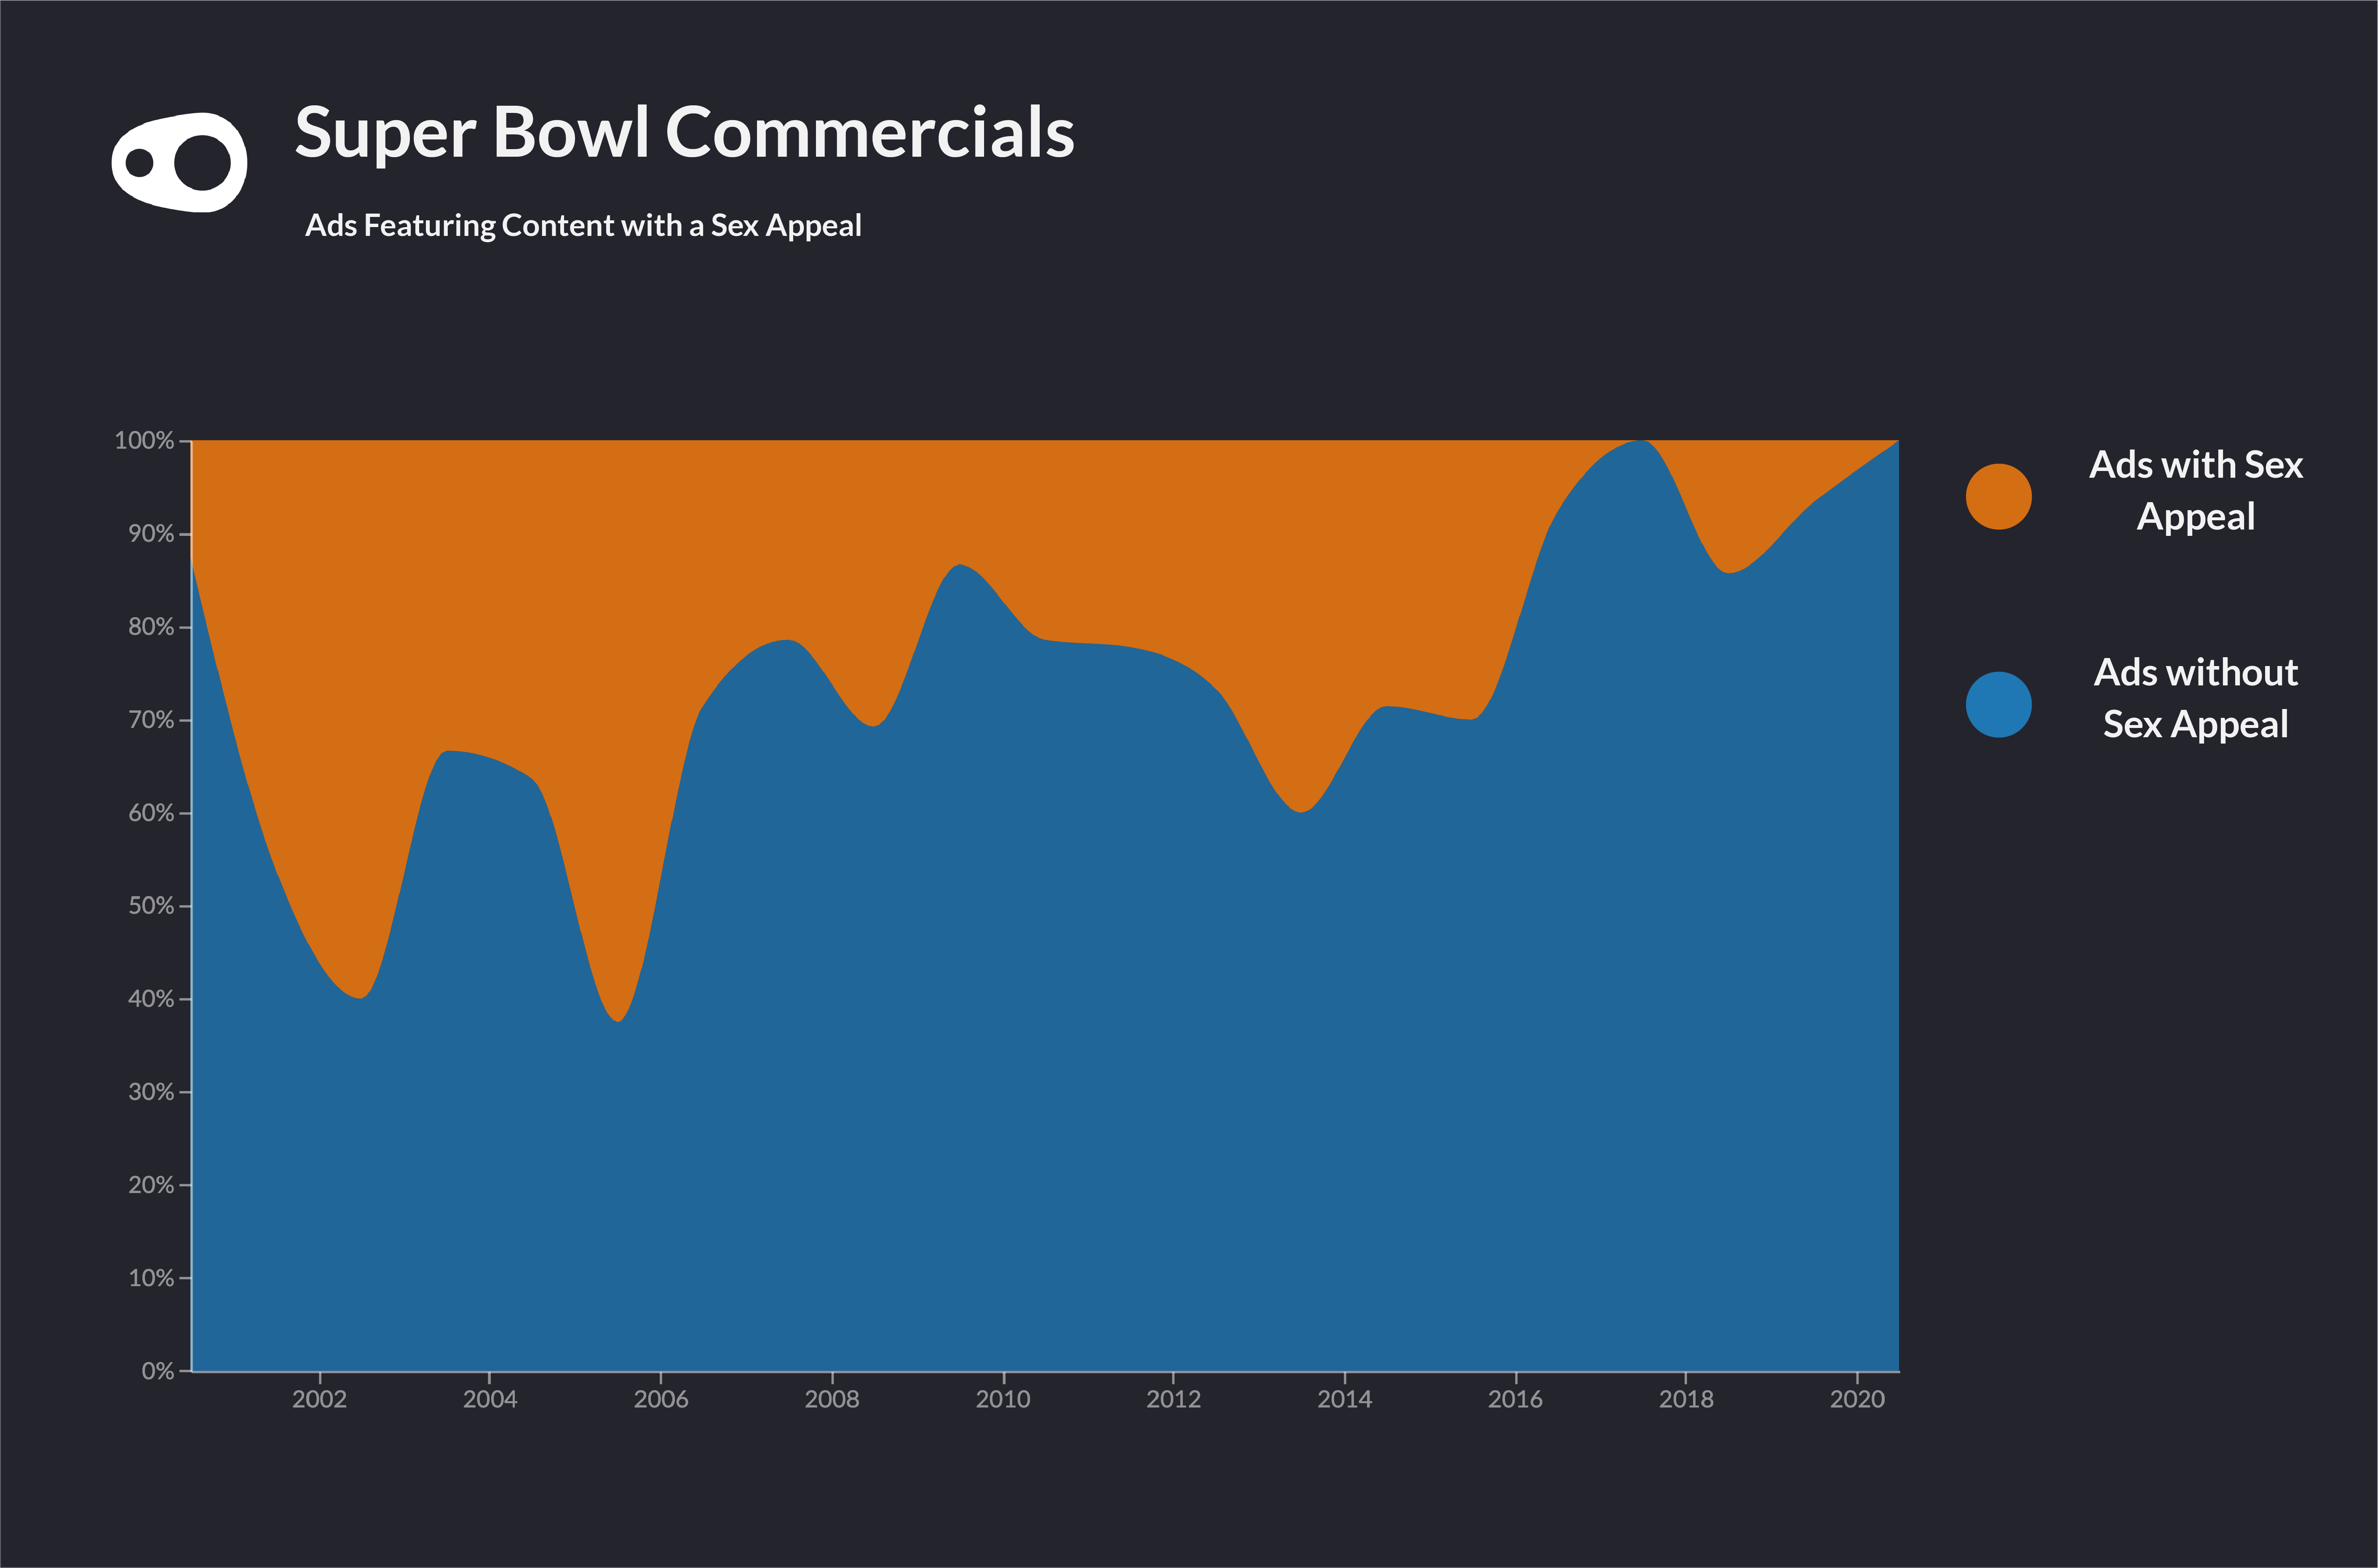 A share chart showing the decline in sex as an advertising device in superbowl commercials over the past 20 years.